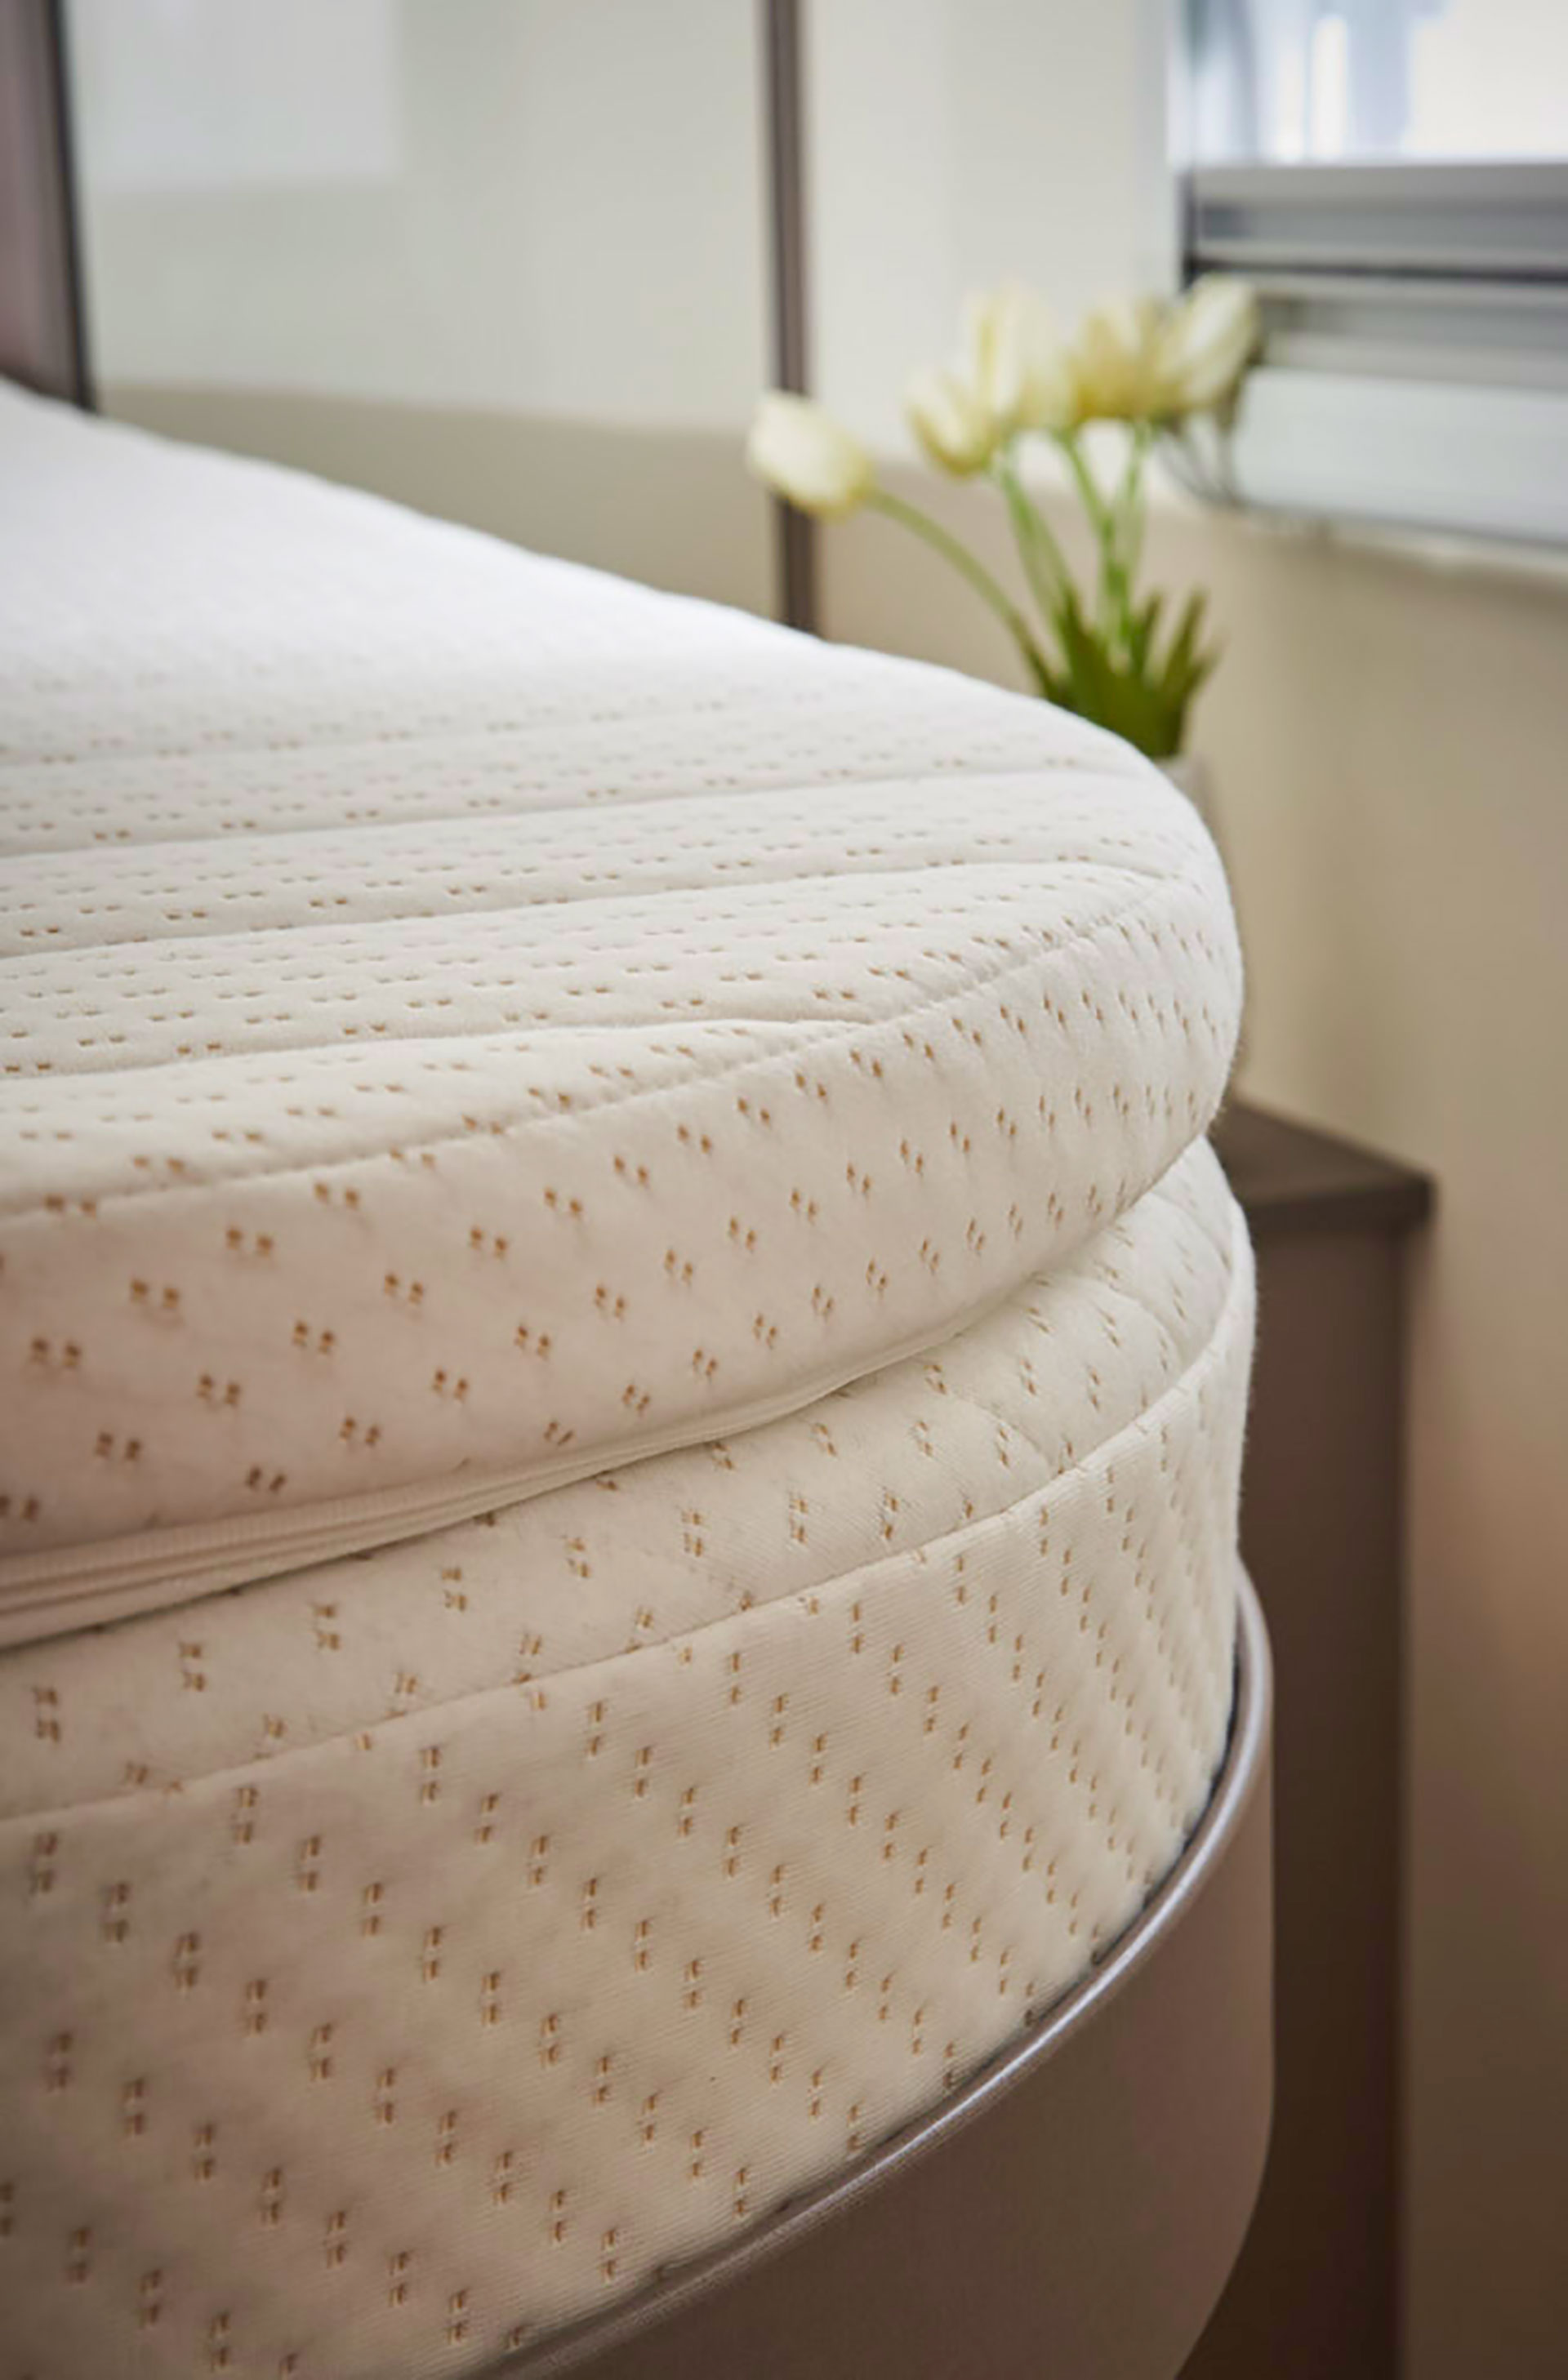 Topper Bett Mattress Topper - Single Bed | Mattress Topper | Sleeping | Bürstner Gmbh Und Co. Kg